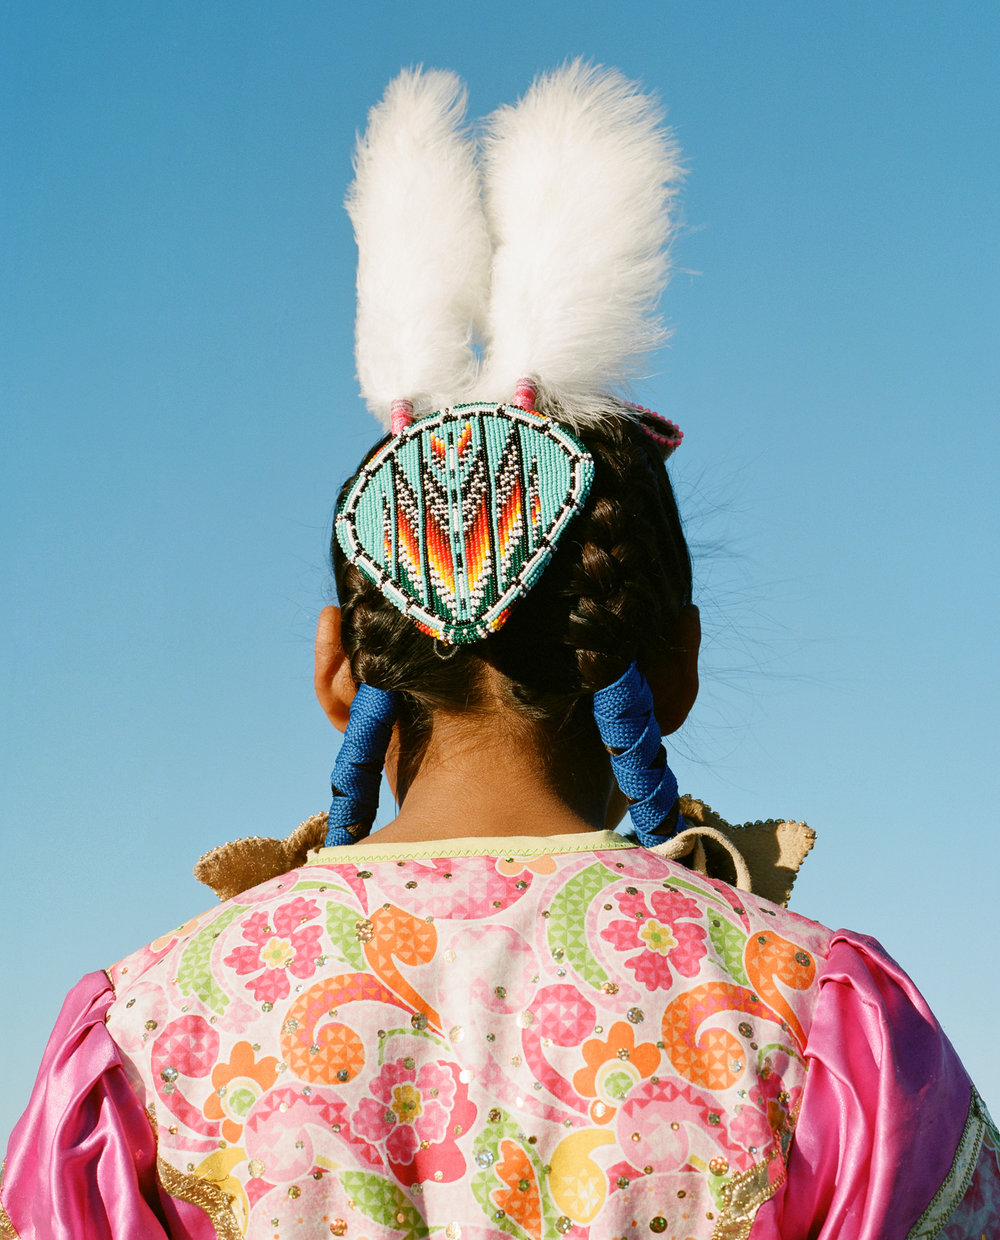 amber_mahoney_water_protectors_north_dakota_standing_rock_dapl_native_american_rights_005.jpg